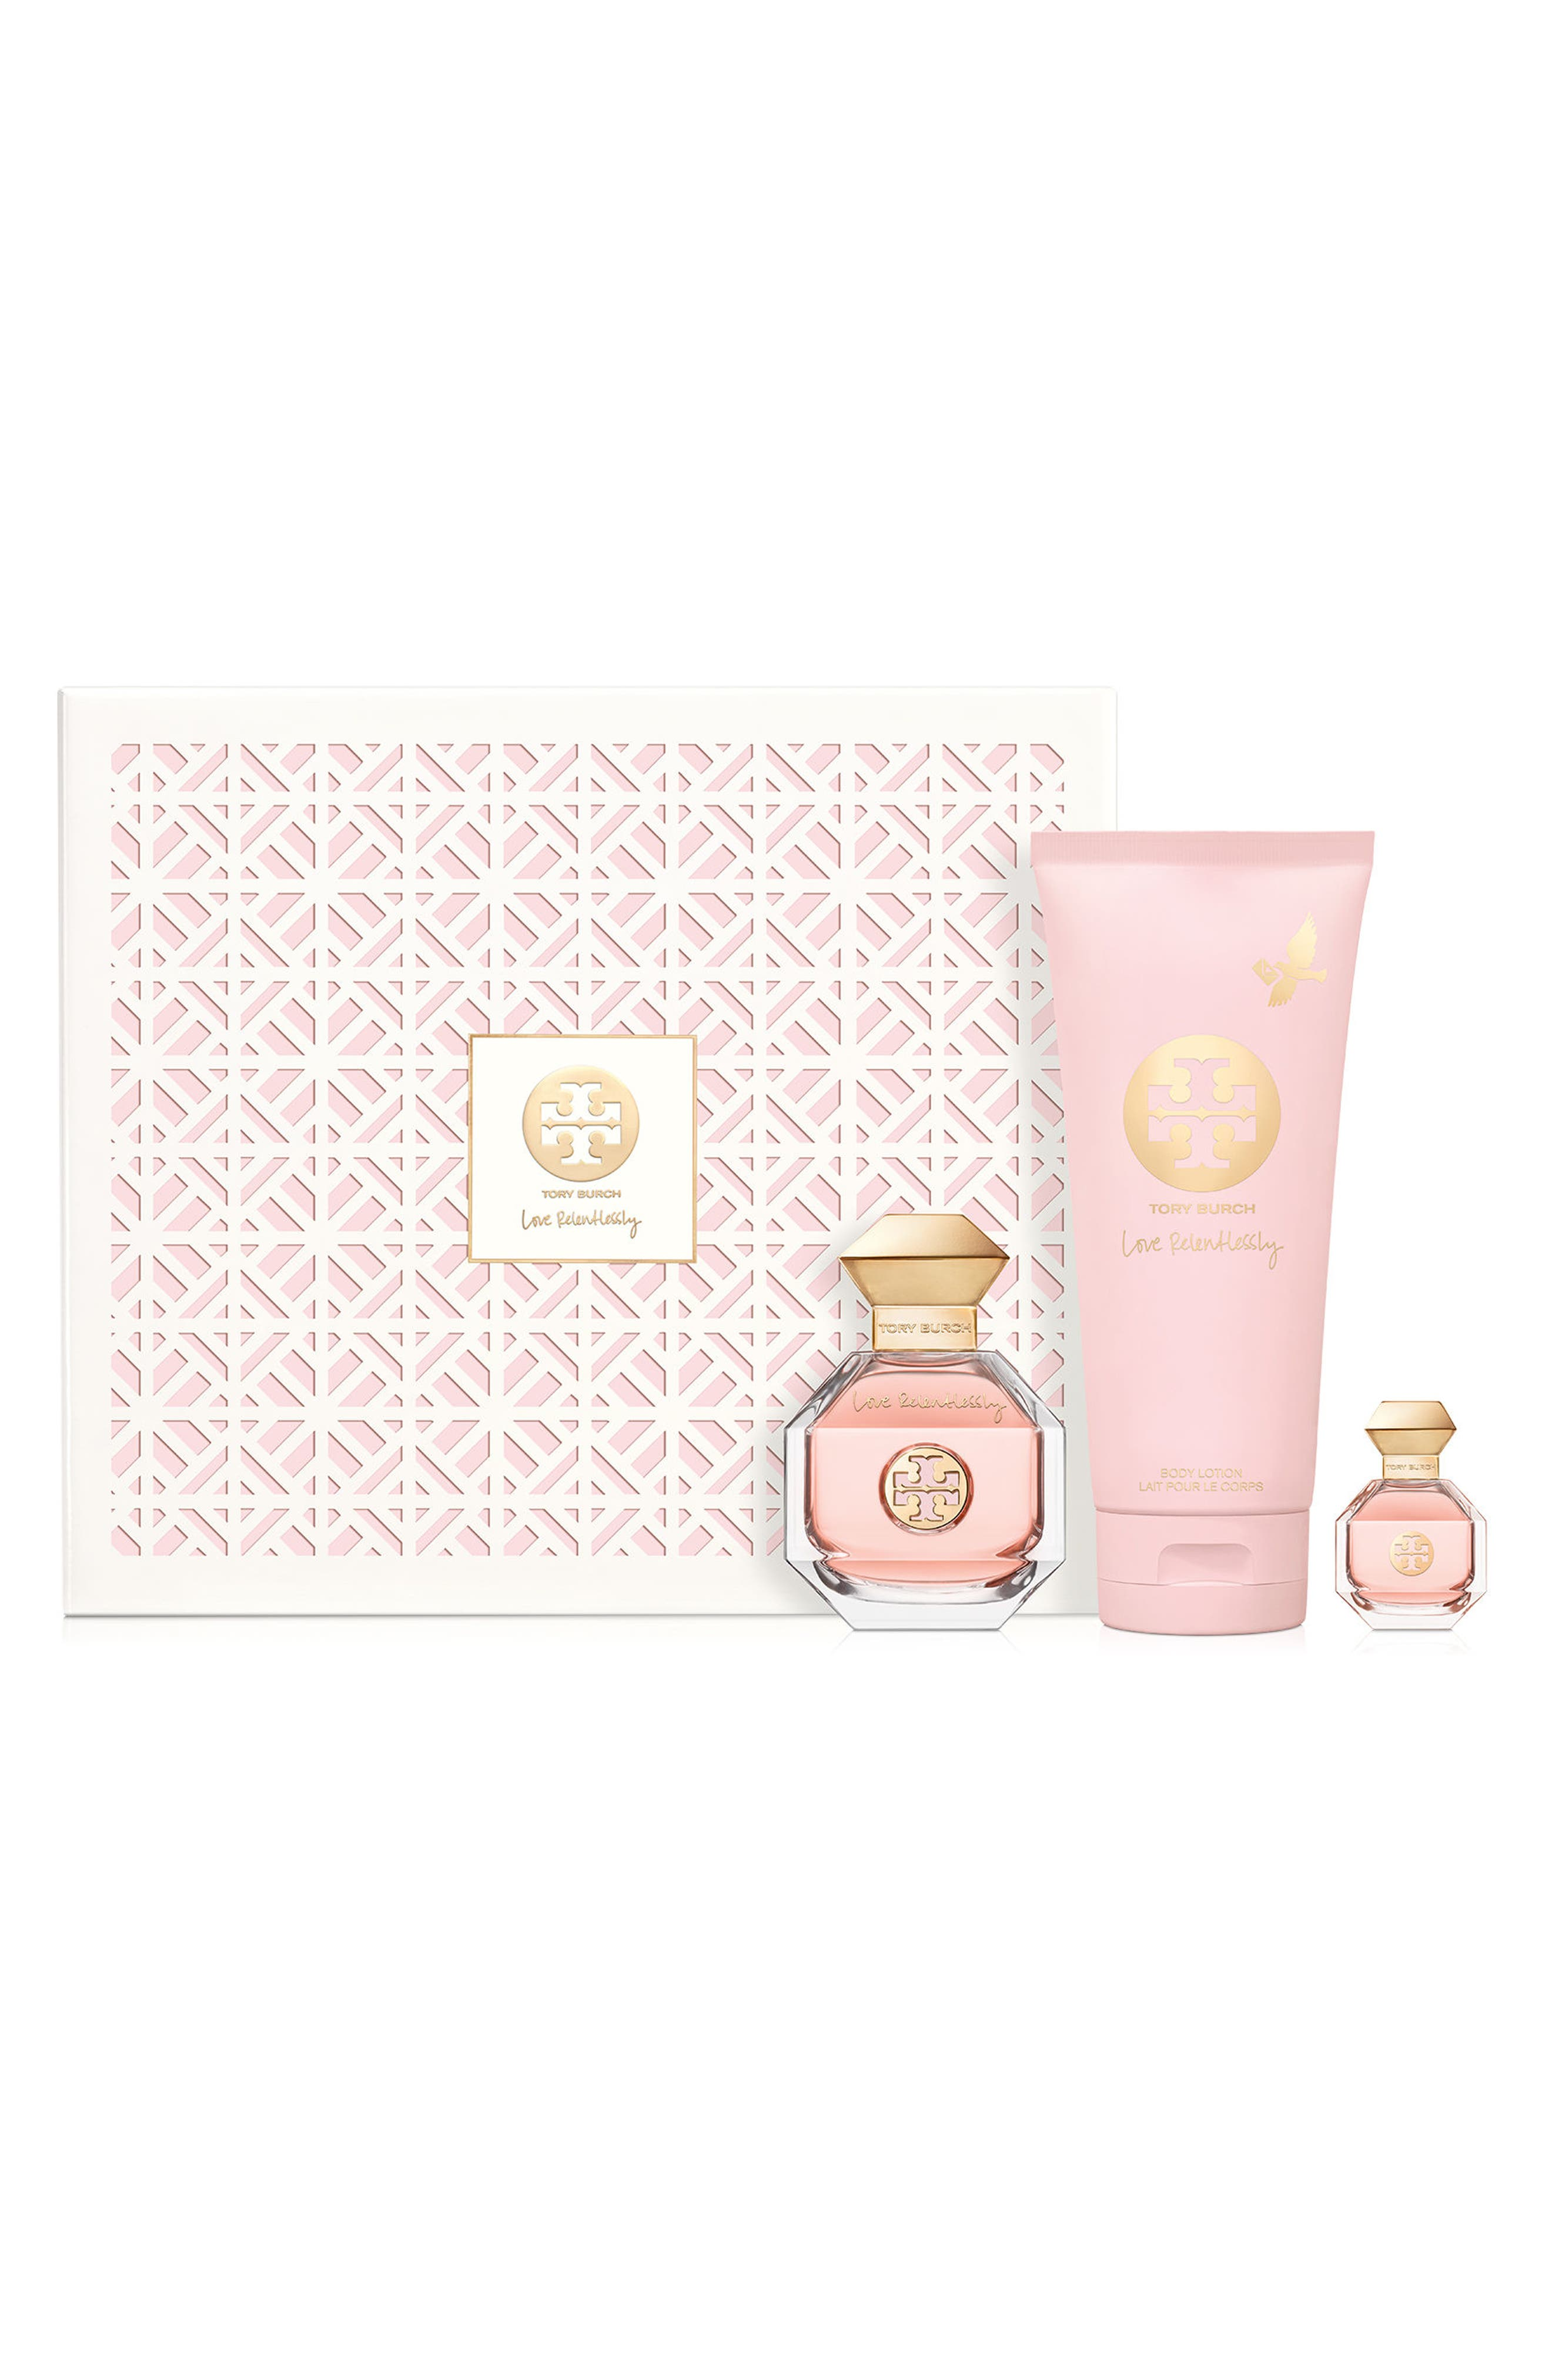 Tory Burch Love Relentlessly Deluxe Set ($175 Value)